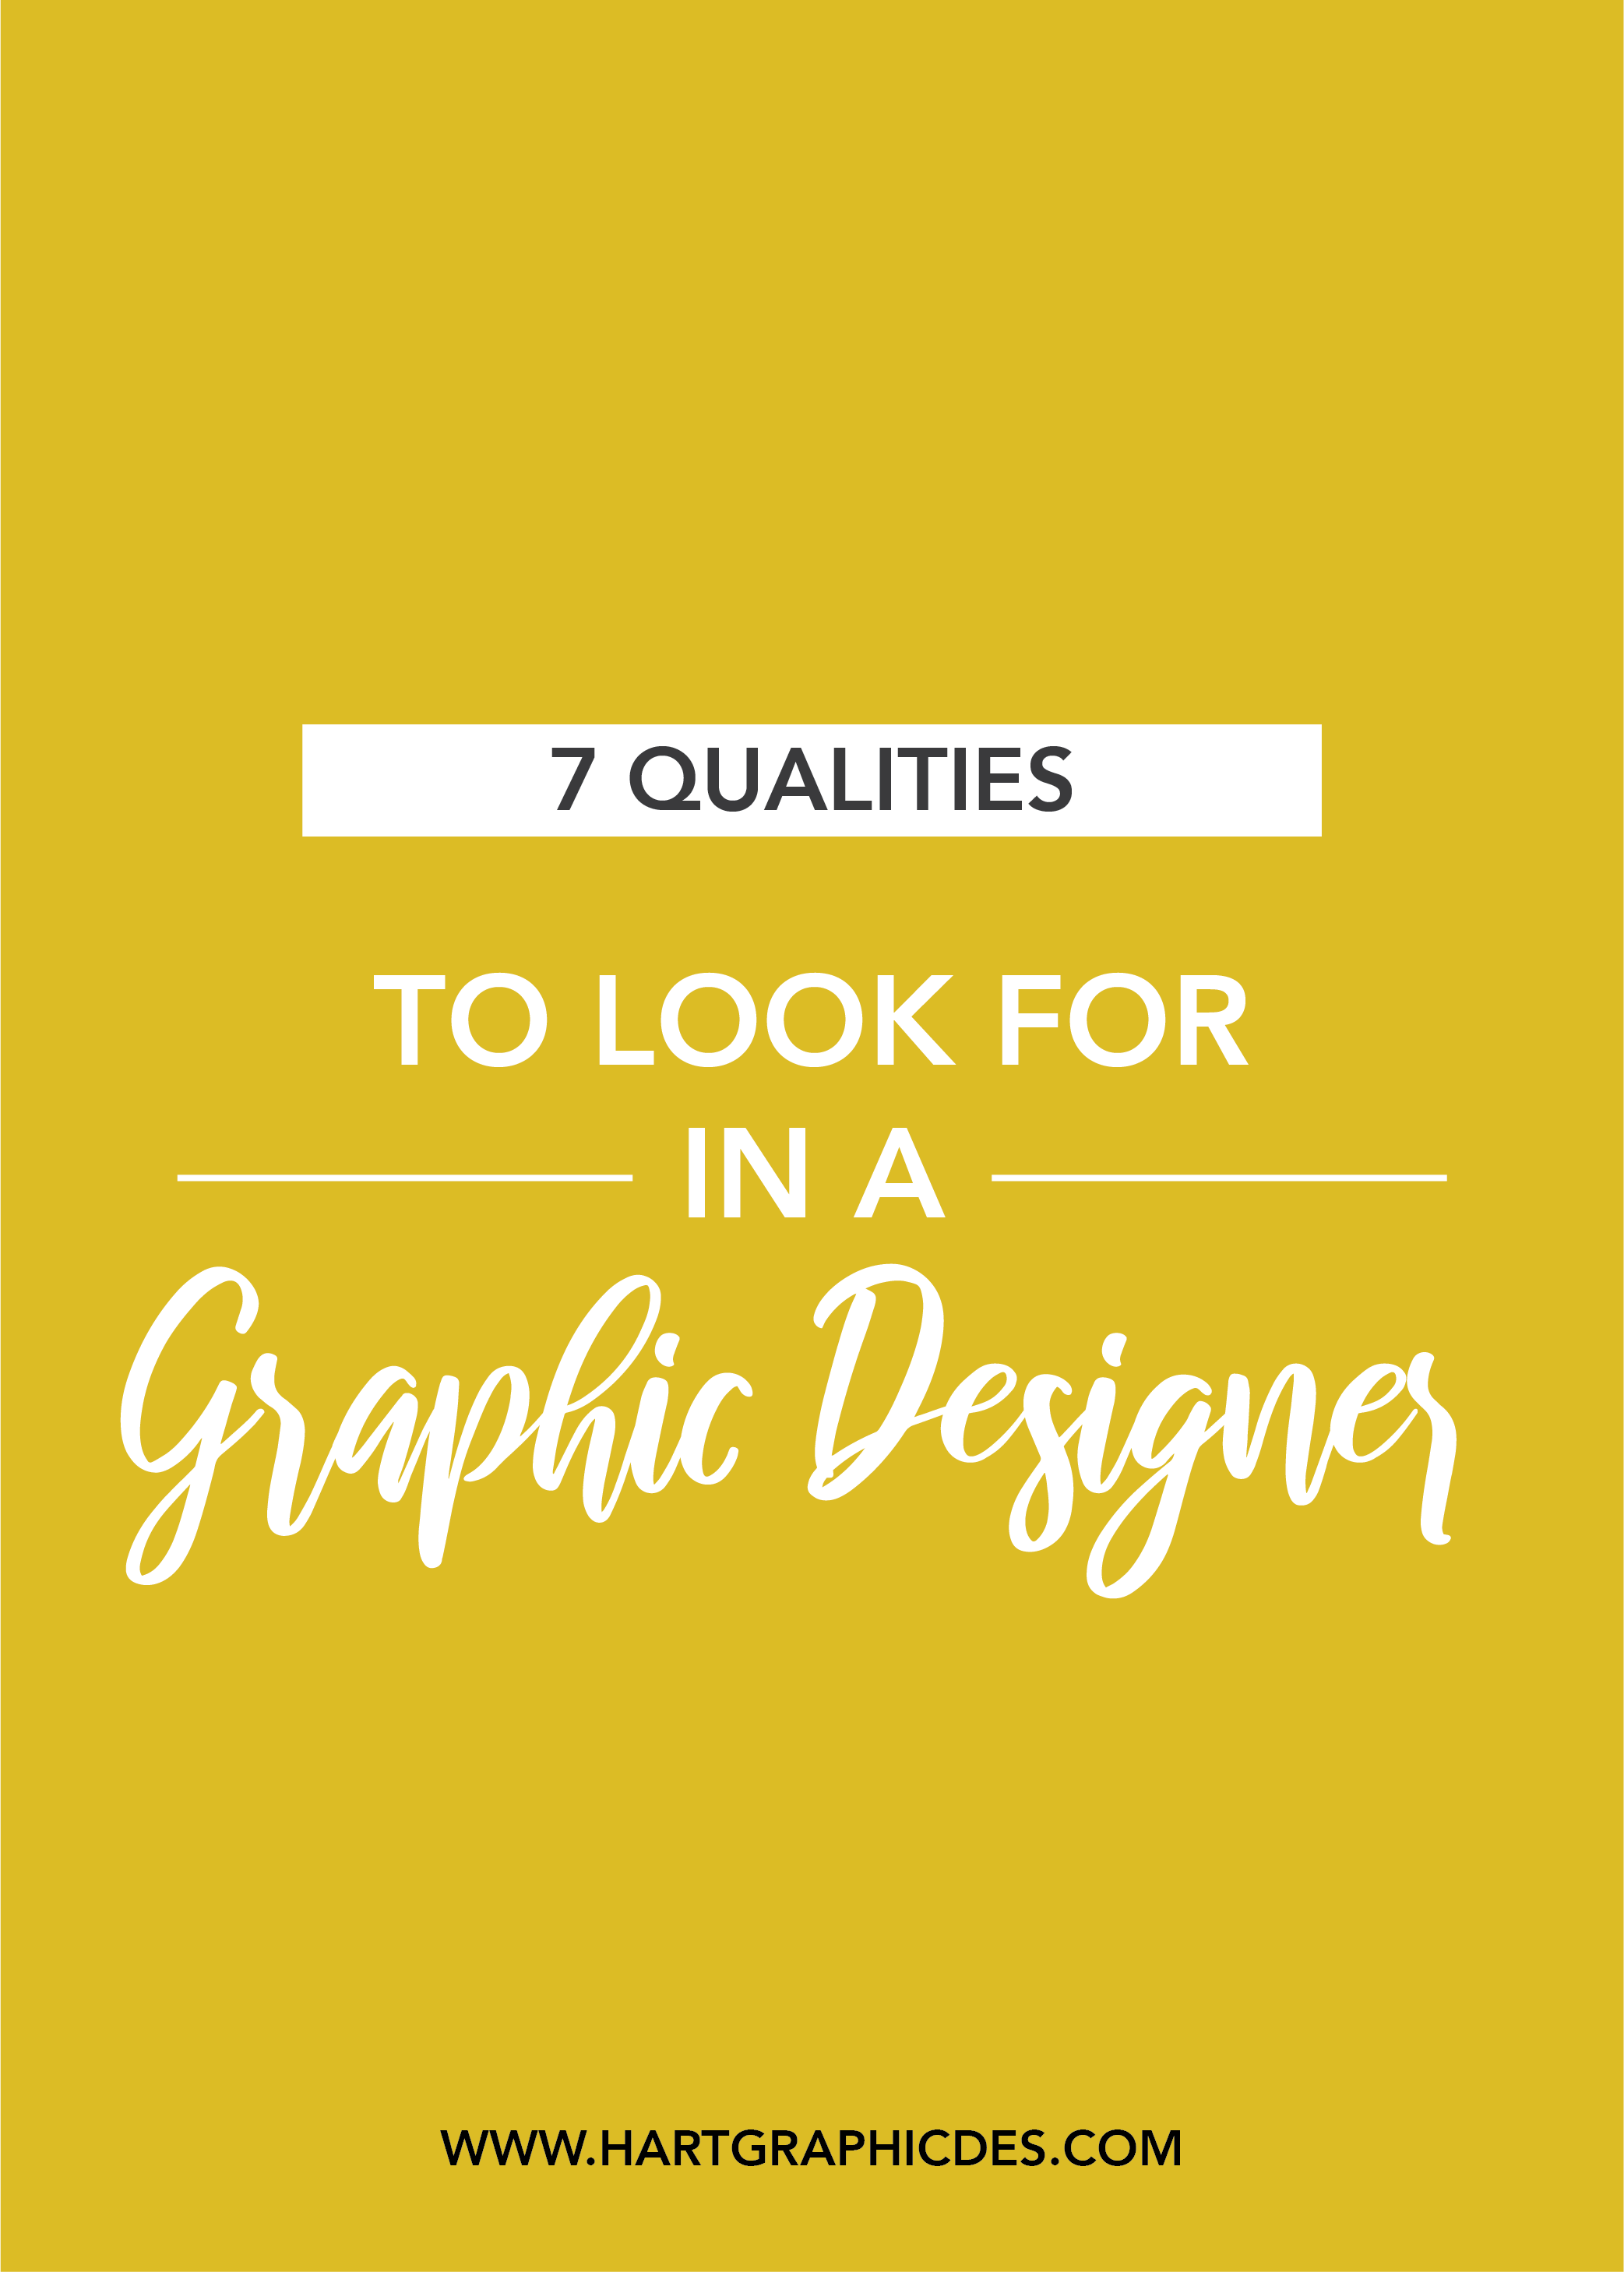 7 Qualities To Look For In A Graphic Designer Graphic Design Design Graphic Design Branding